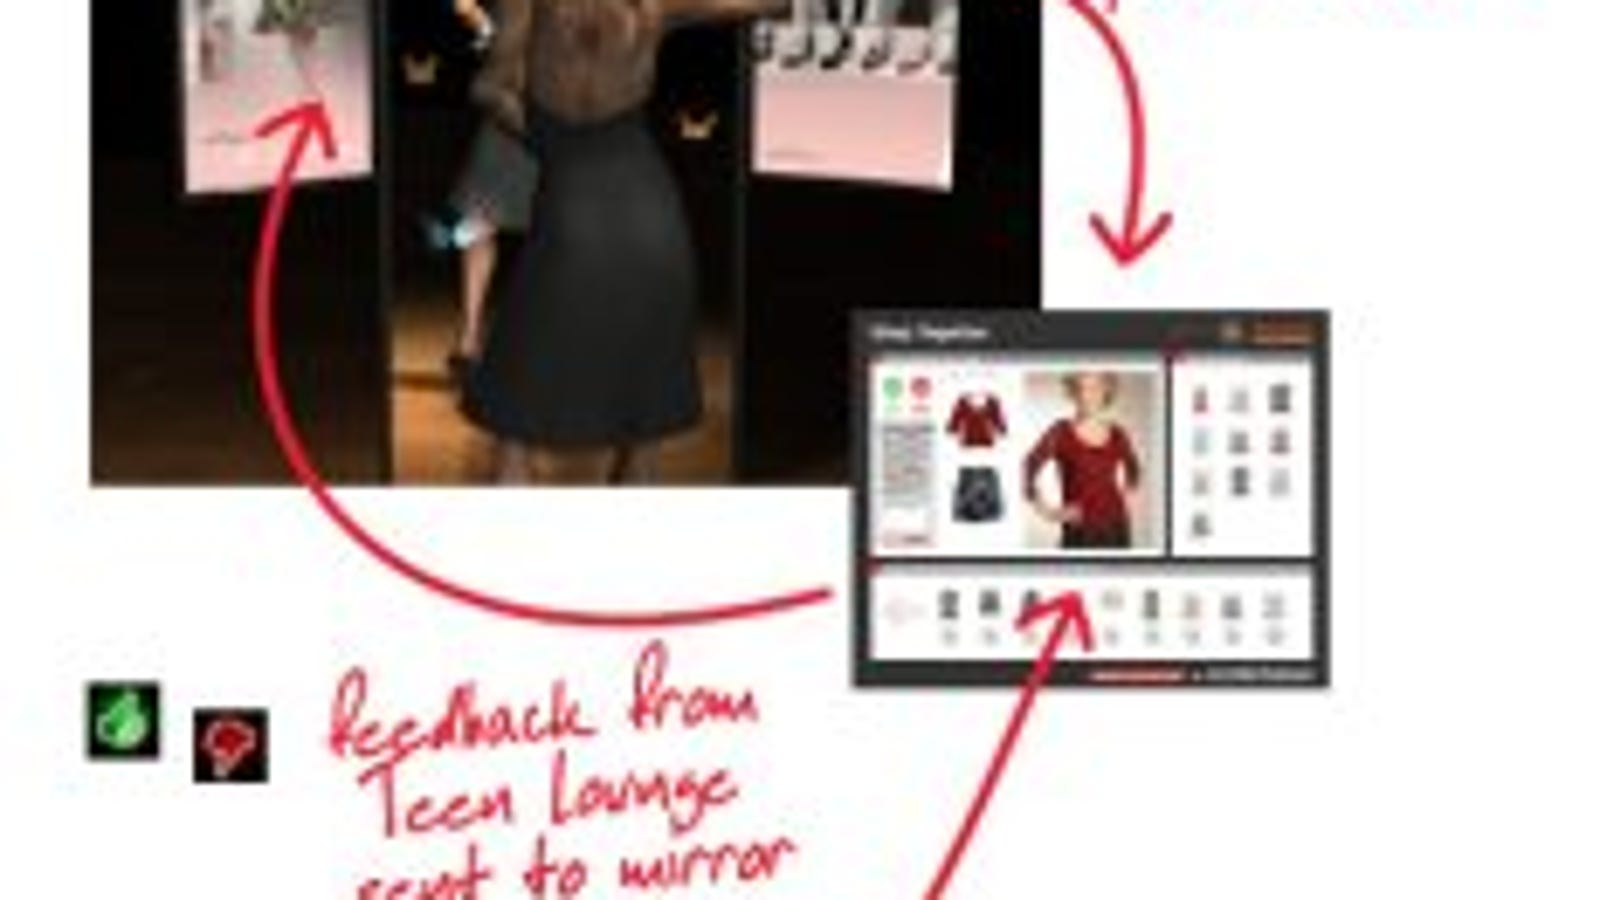 Magic Mirror Lets You Text From The Fitting Room